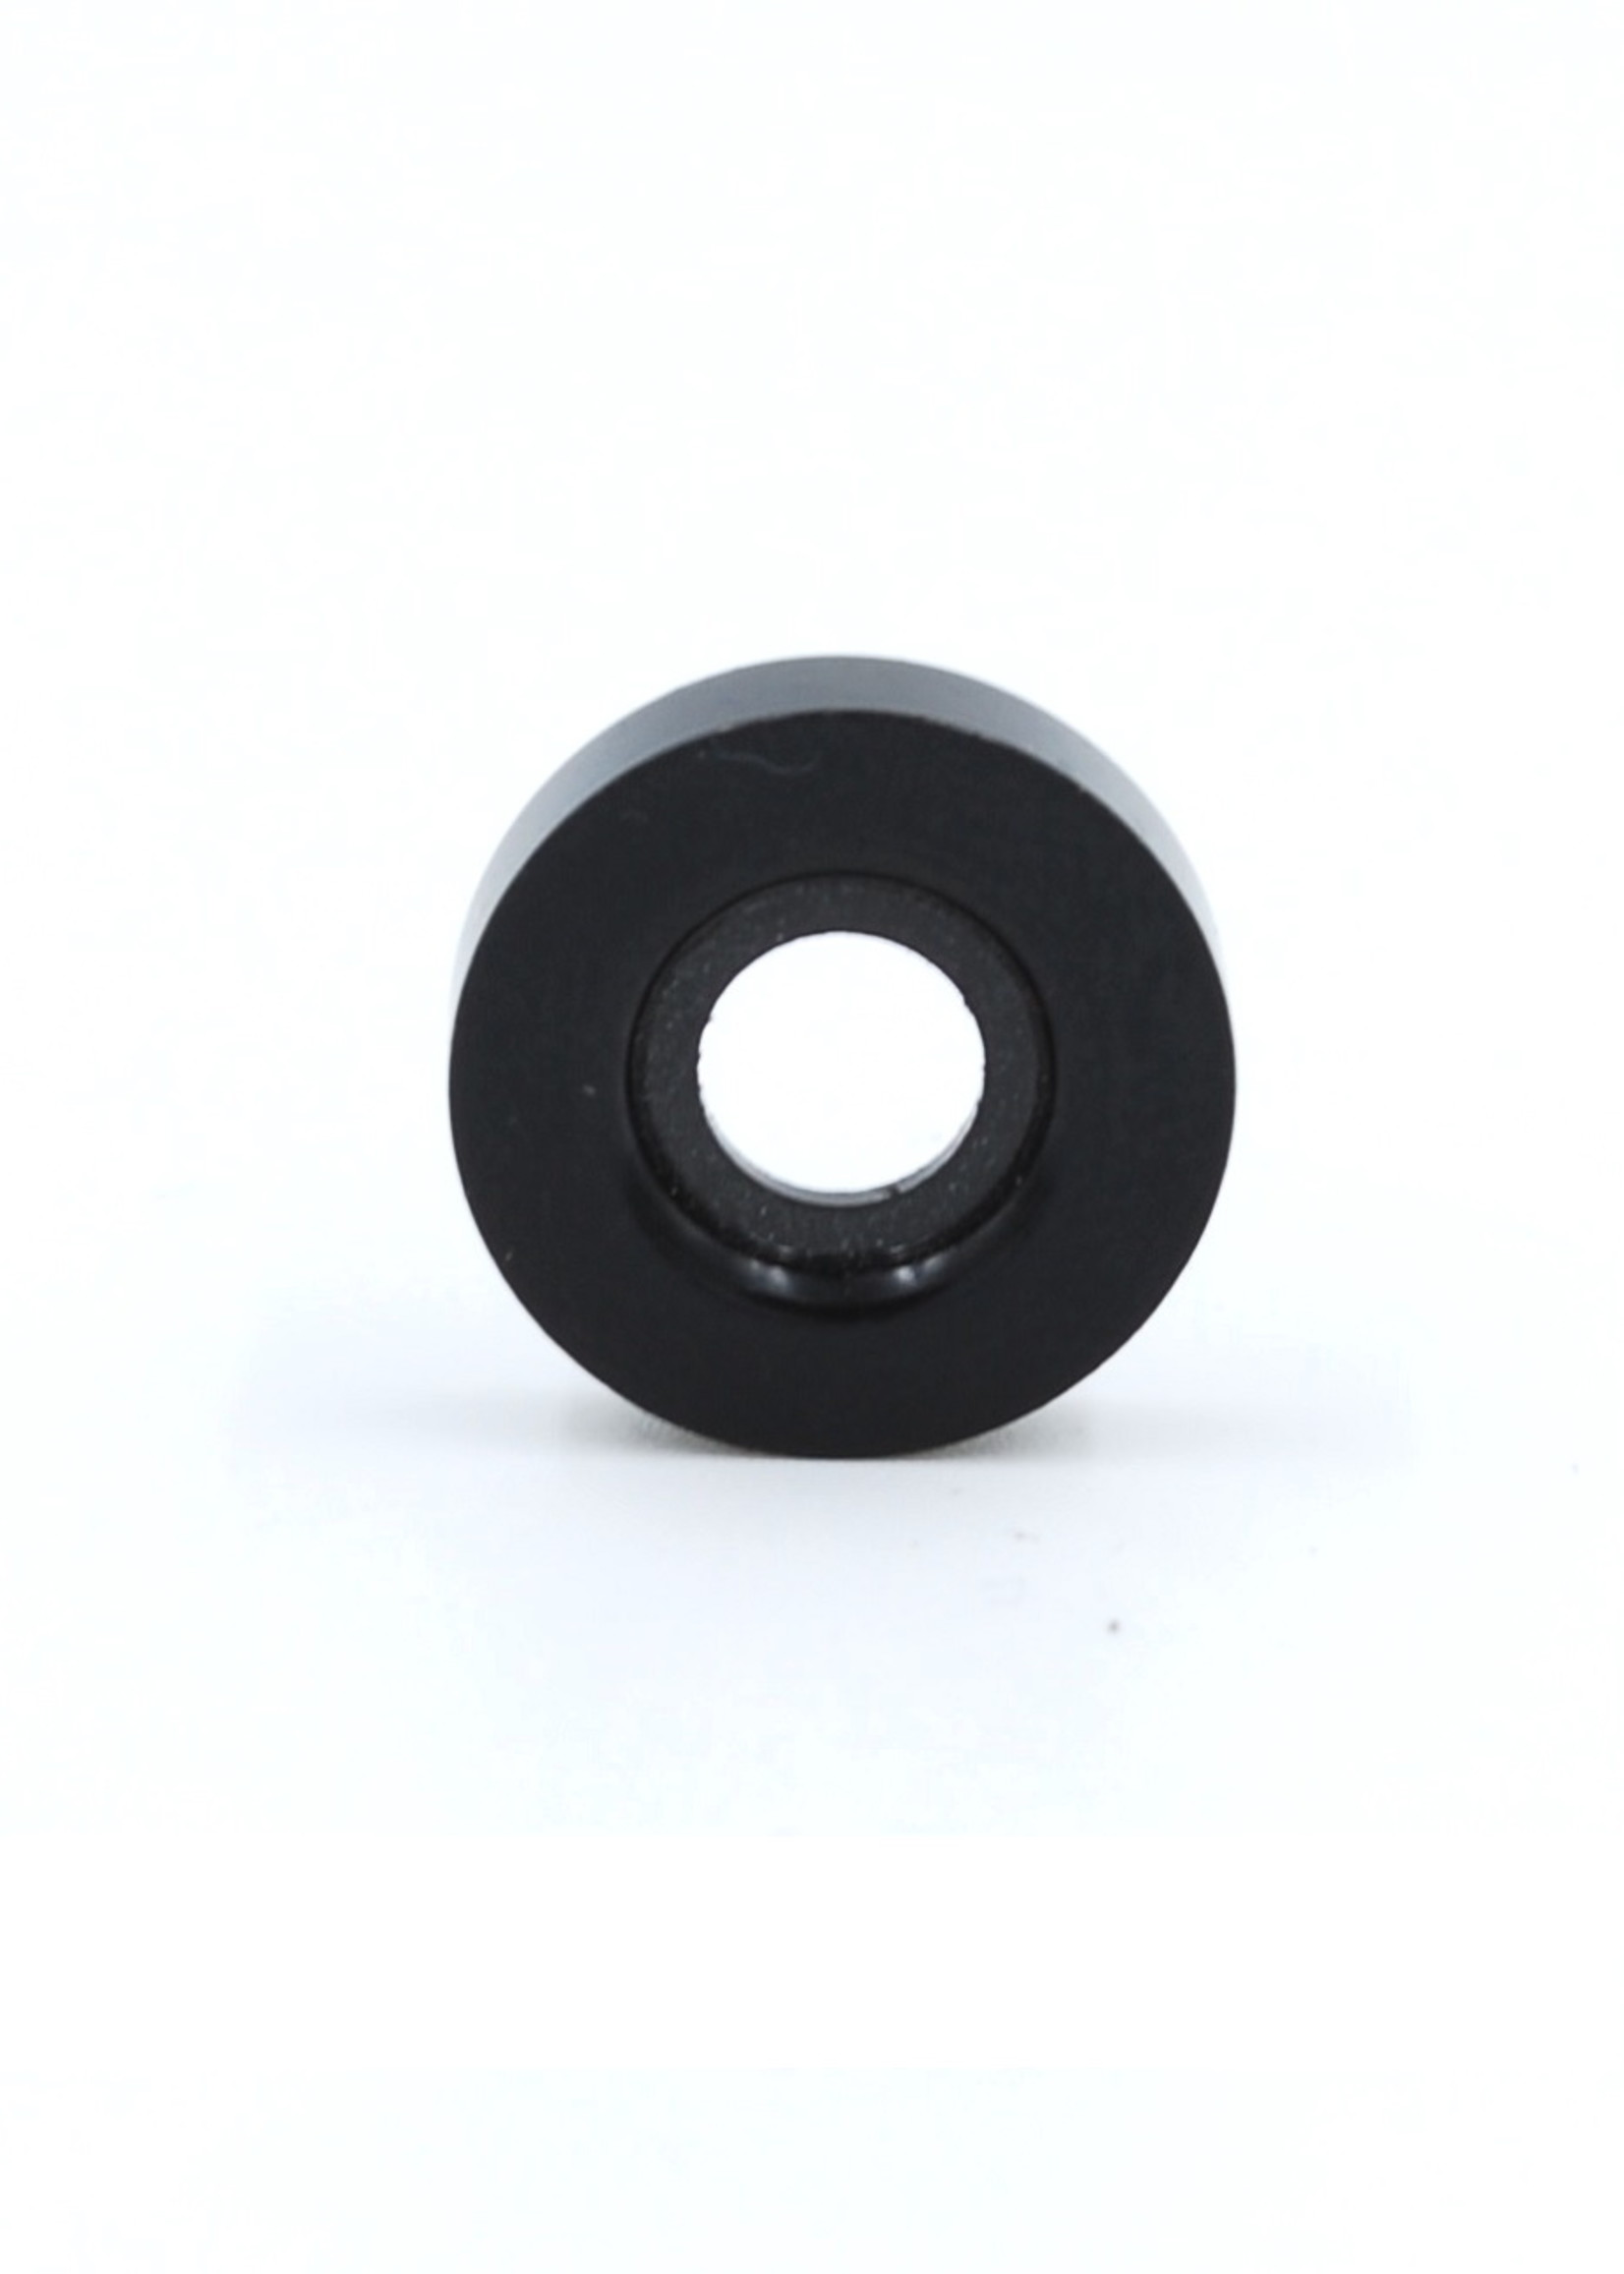 Hammer washers for the G43 and K43 rifle (2 pcs)